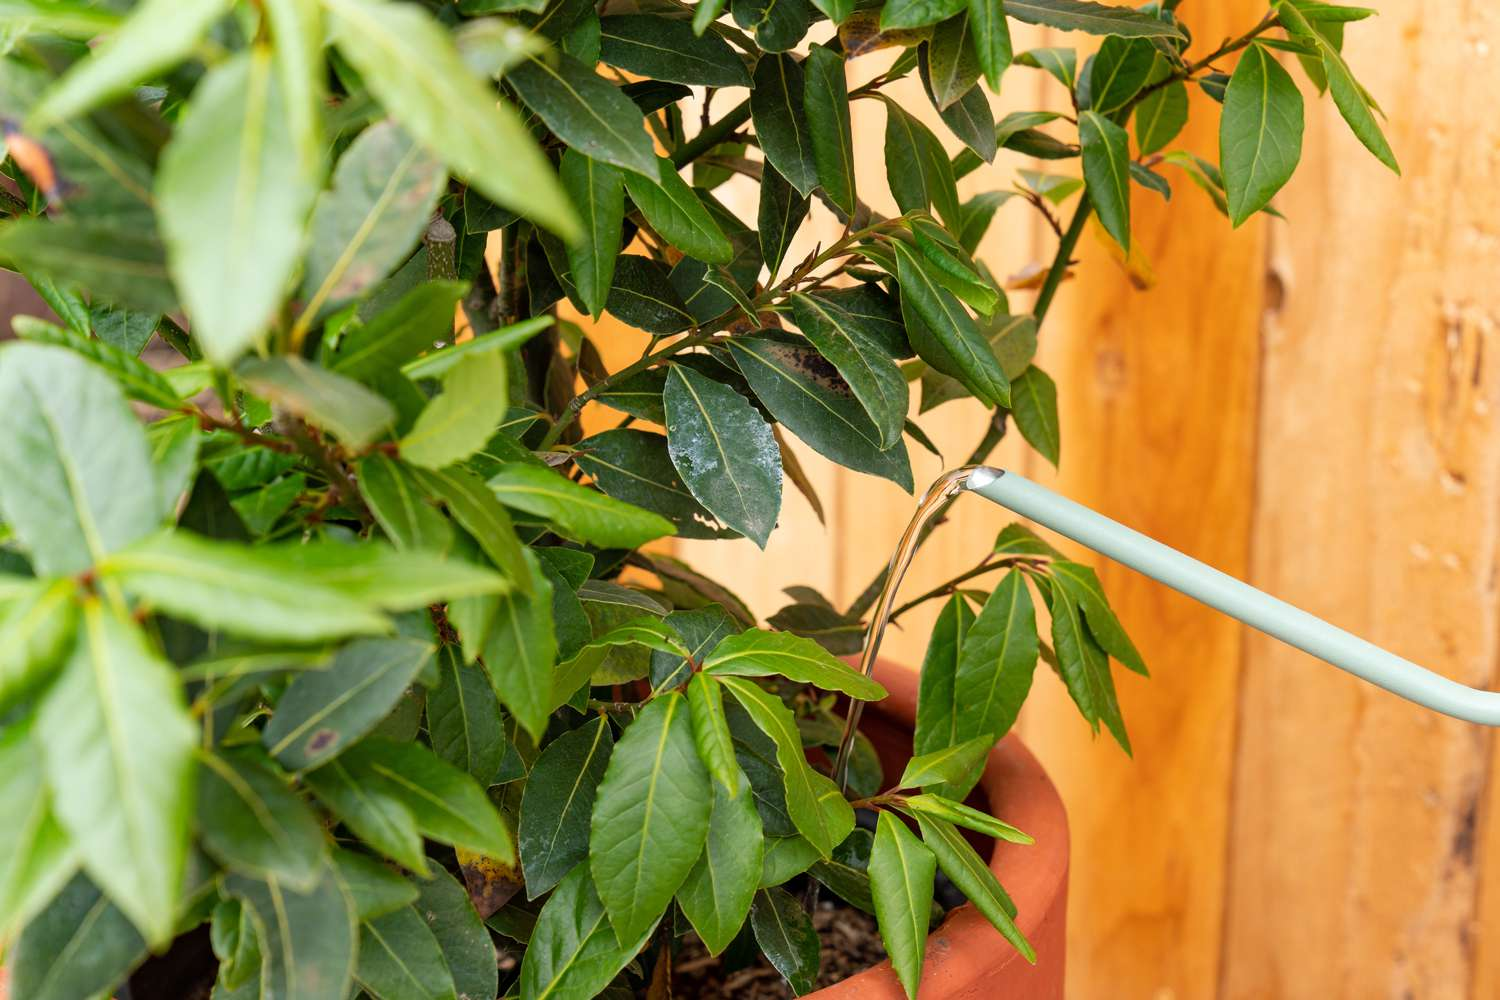 Bay laurel plant in orange pot with mint-colored watering can pouring water